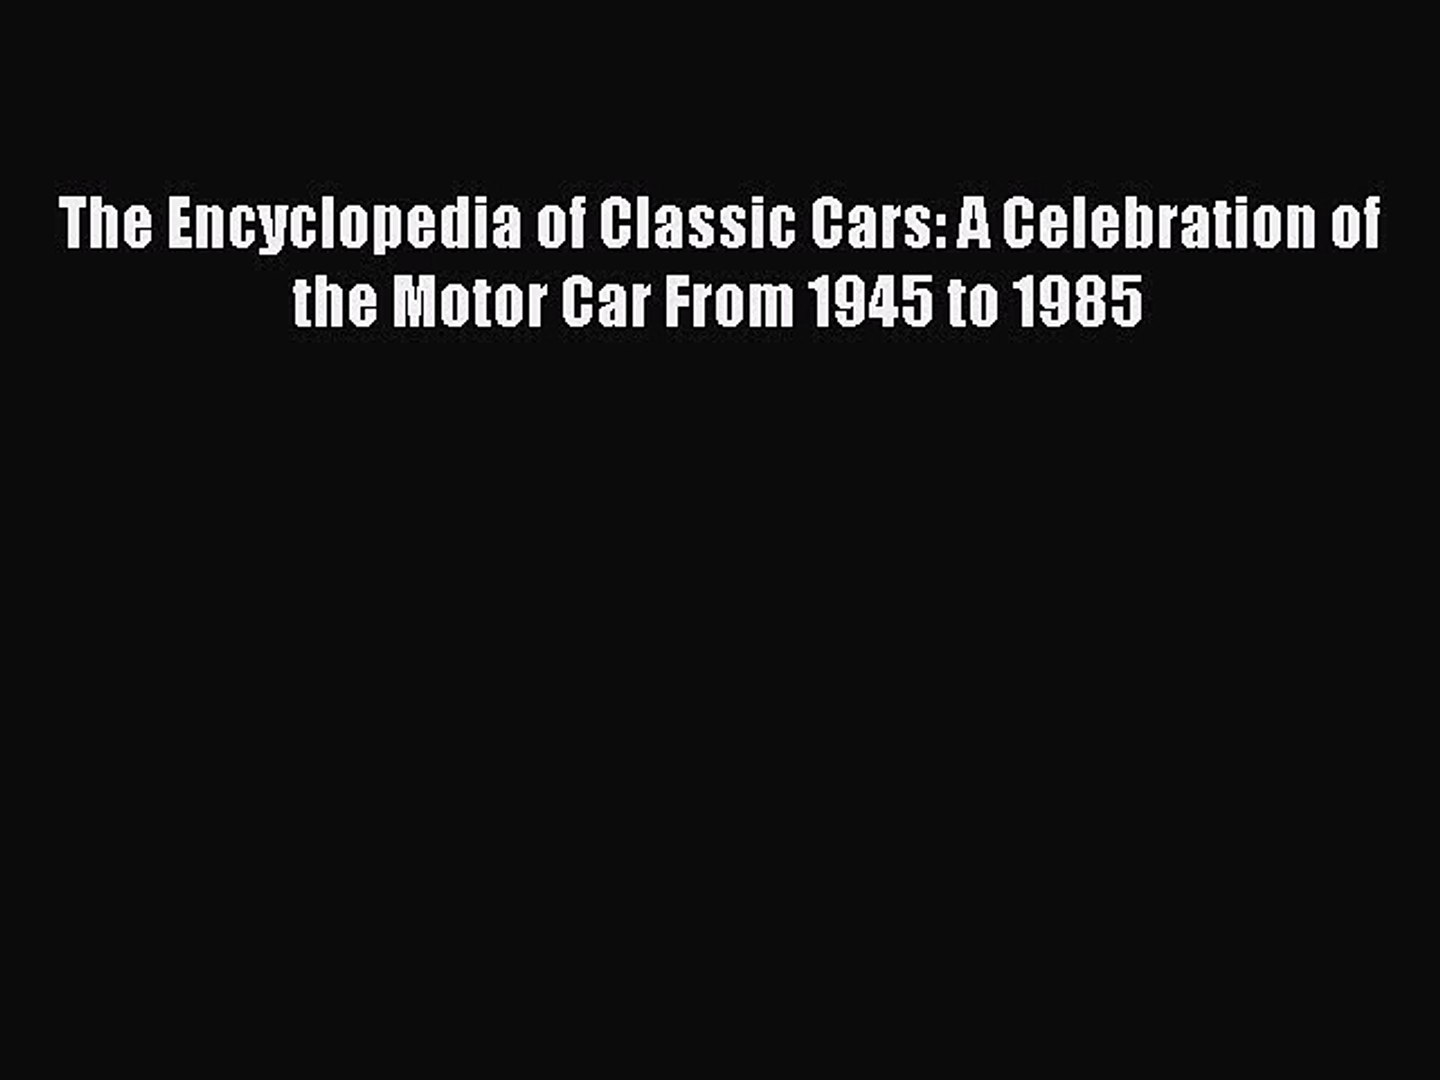 Read The Encyclopedia of Classic Cars: A Celebration of the Motor Car From 1945 to 1985 Ebook